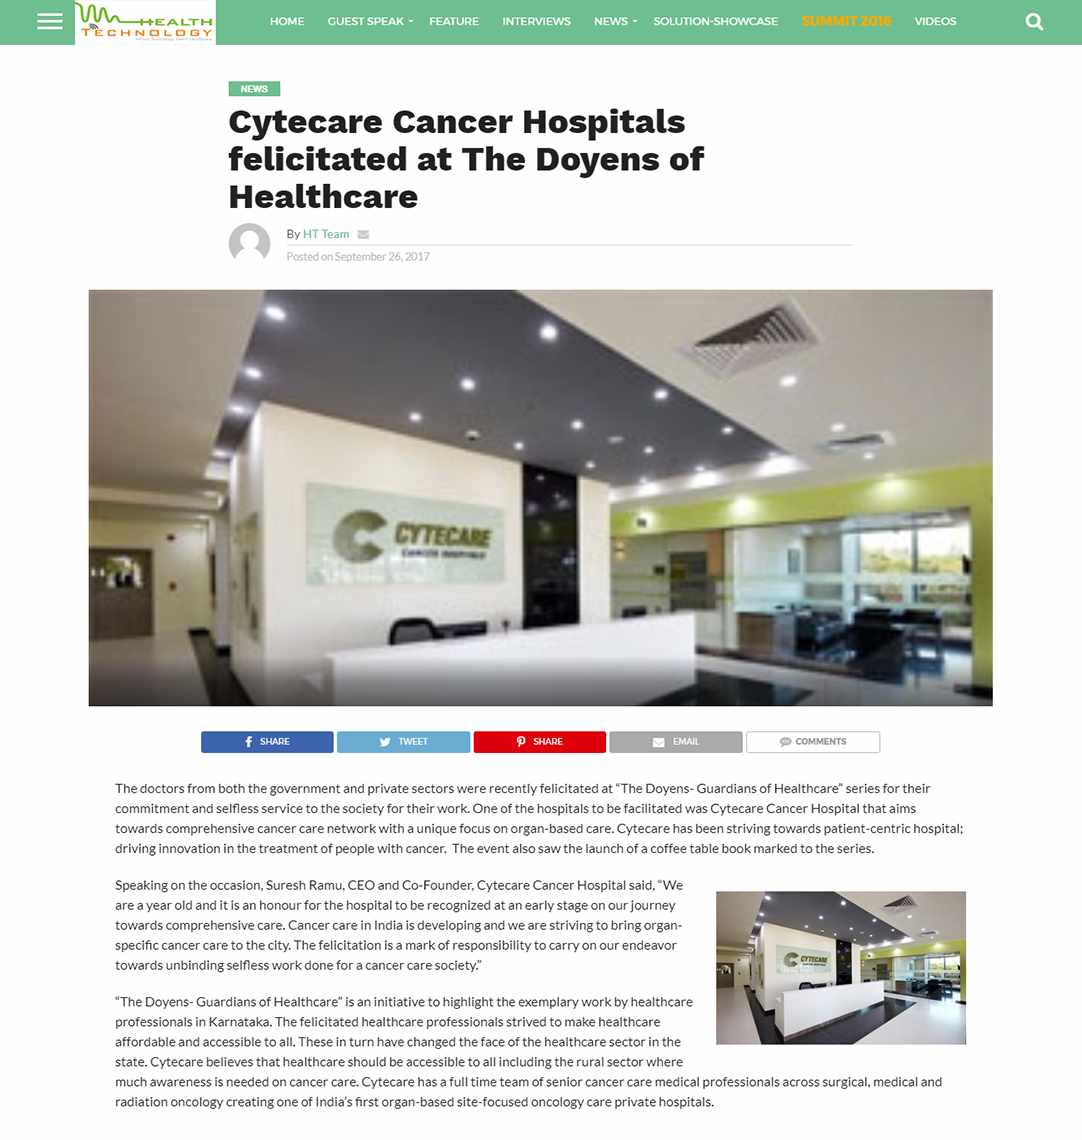 Cytecare Cancer Hospitals felicitated at The Doyens of Healthcare